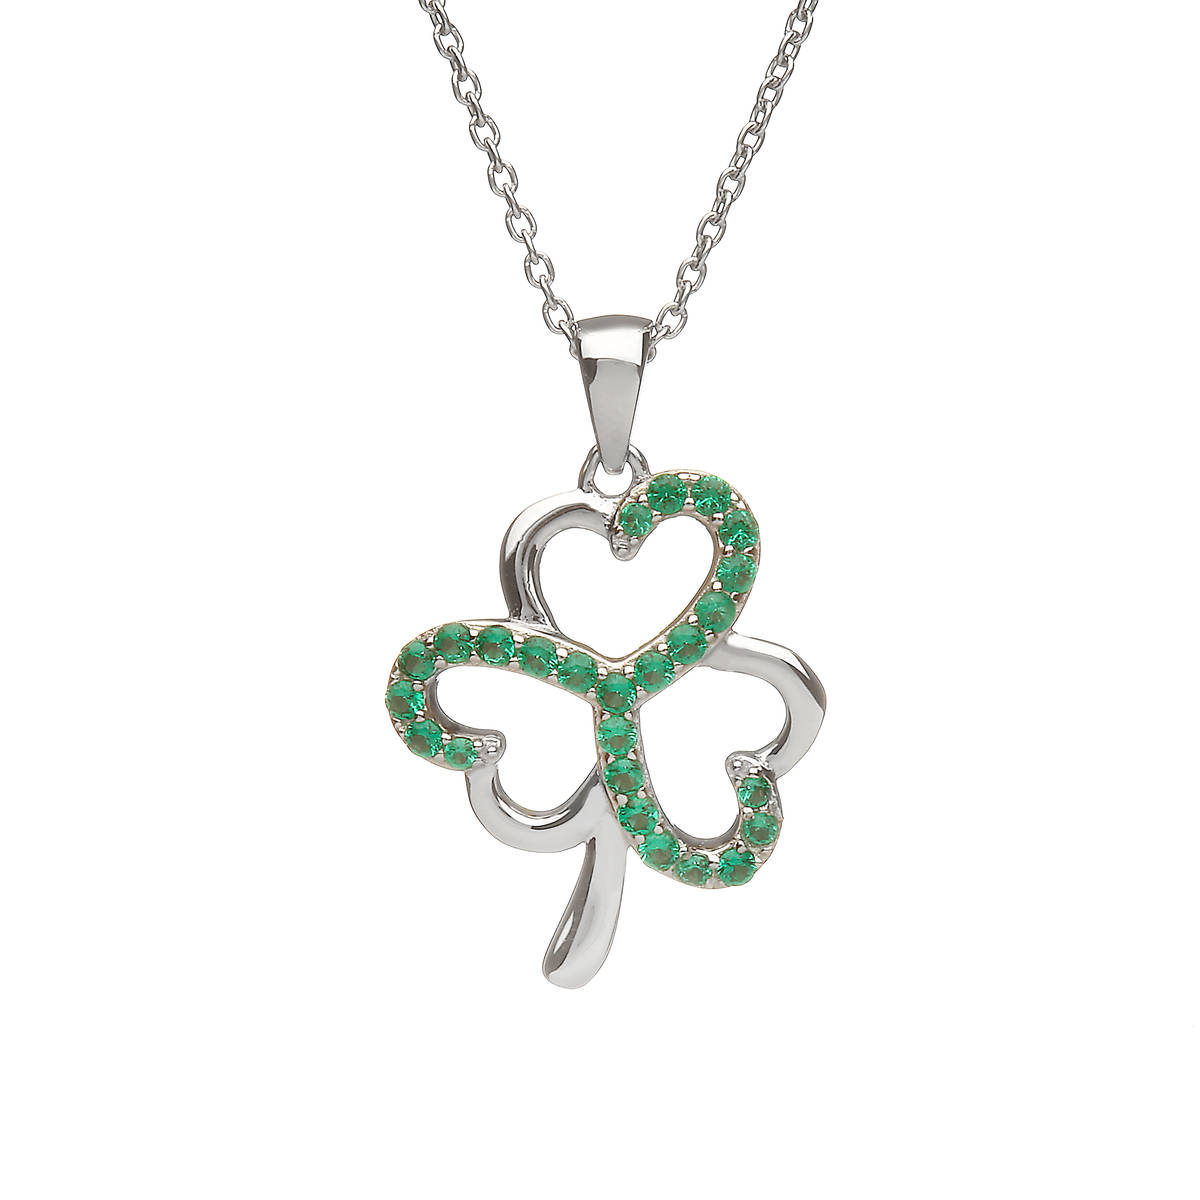 Sterling Silver Shamrock Design Pendant Set With Emerald Green Cubic Zirconias